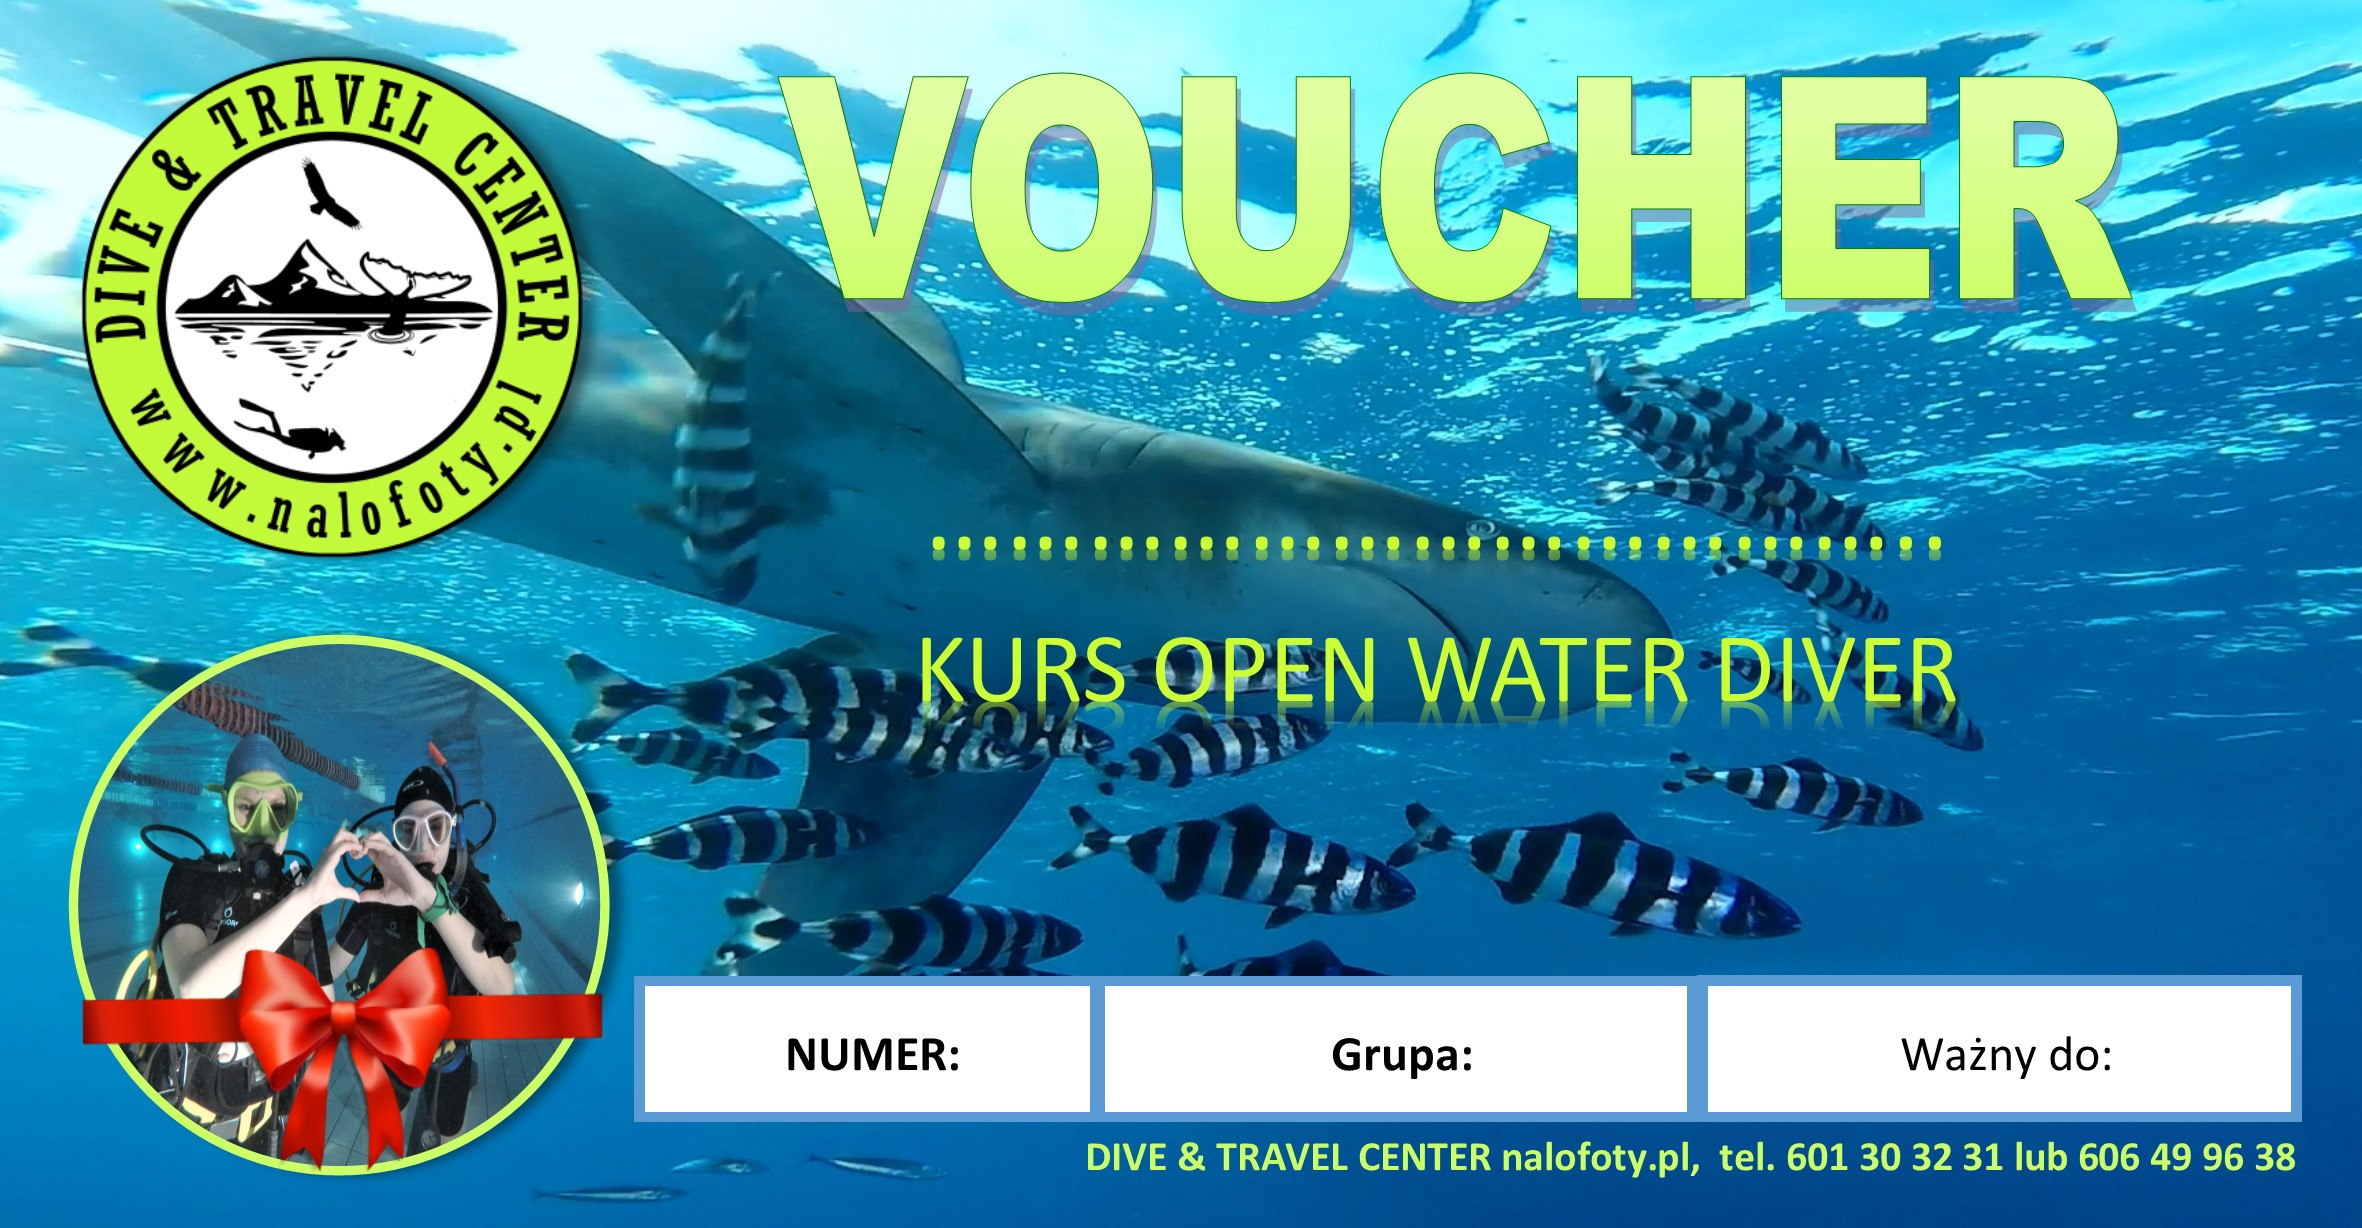 Podaruj freediving, freediving voucher